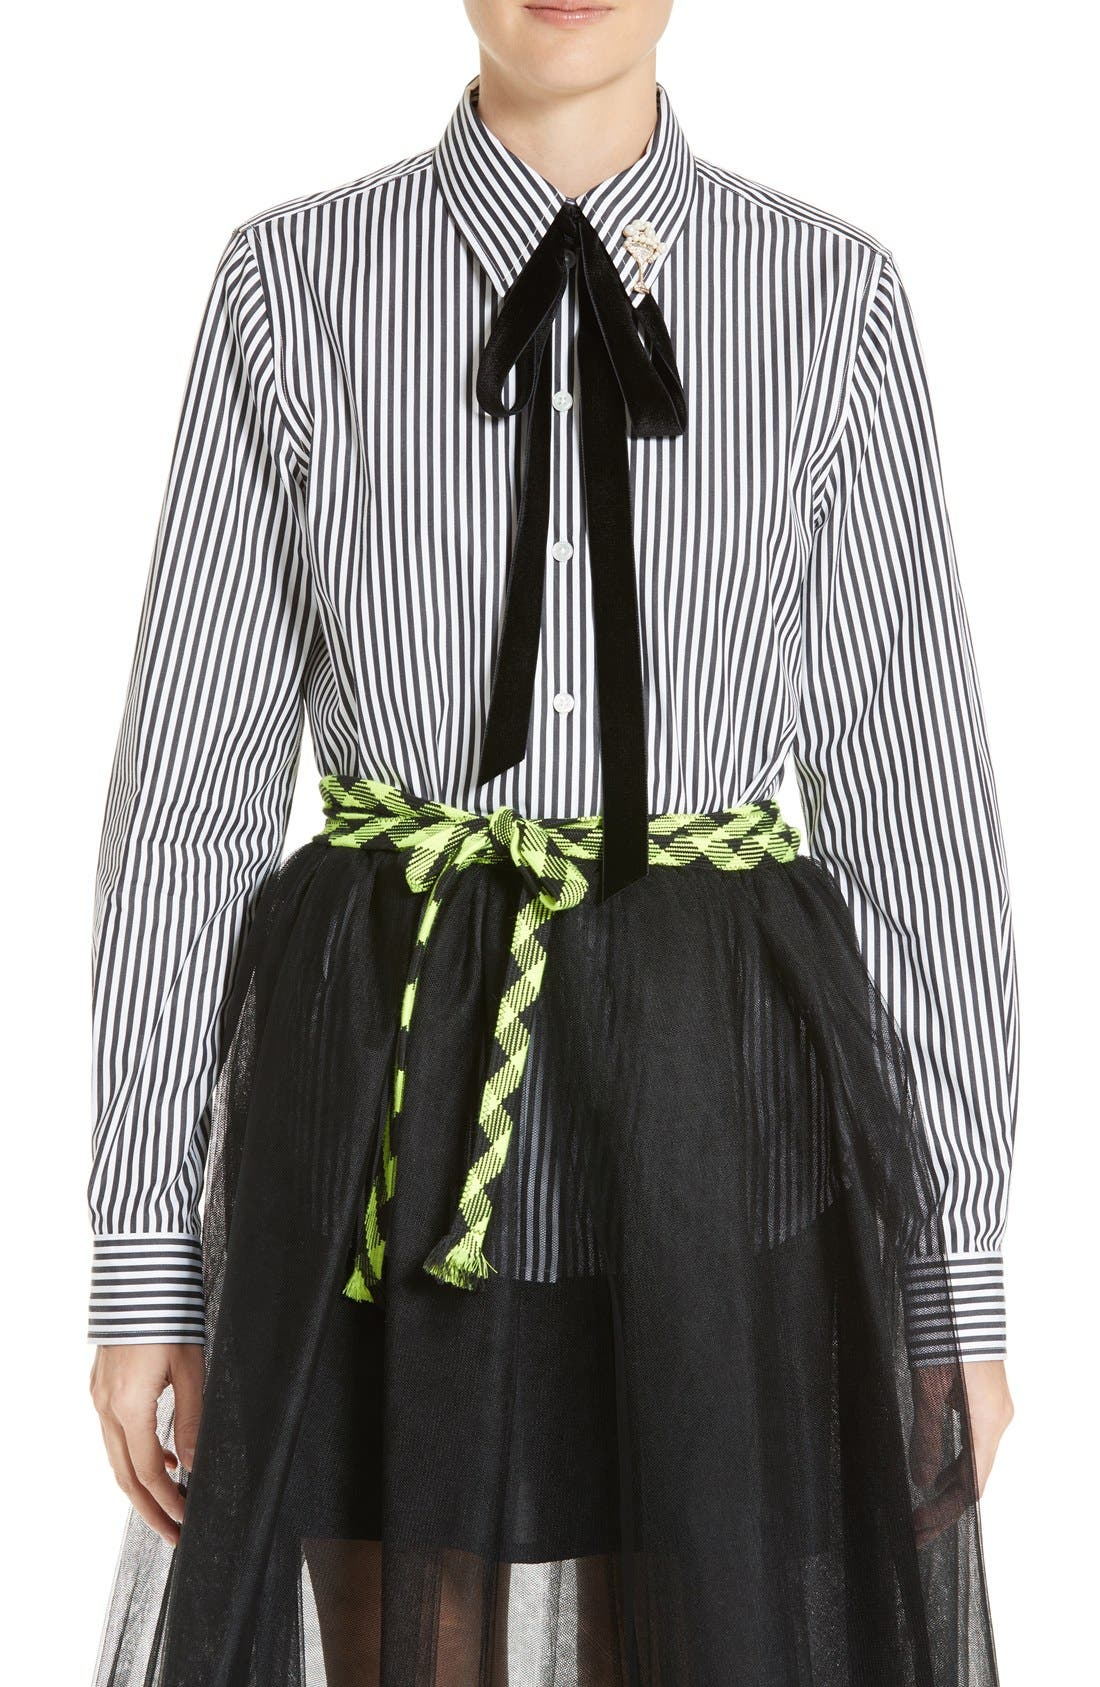 MARC JACOBS Embellished Tie Neck Stripe Poplin Shirt